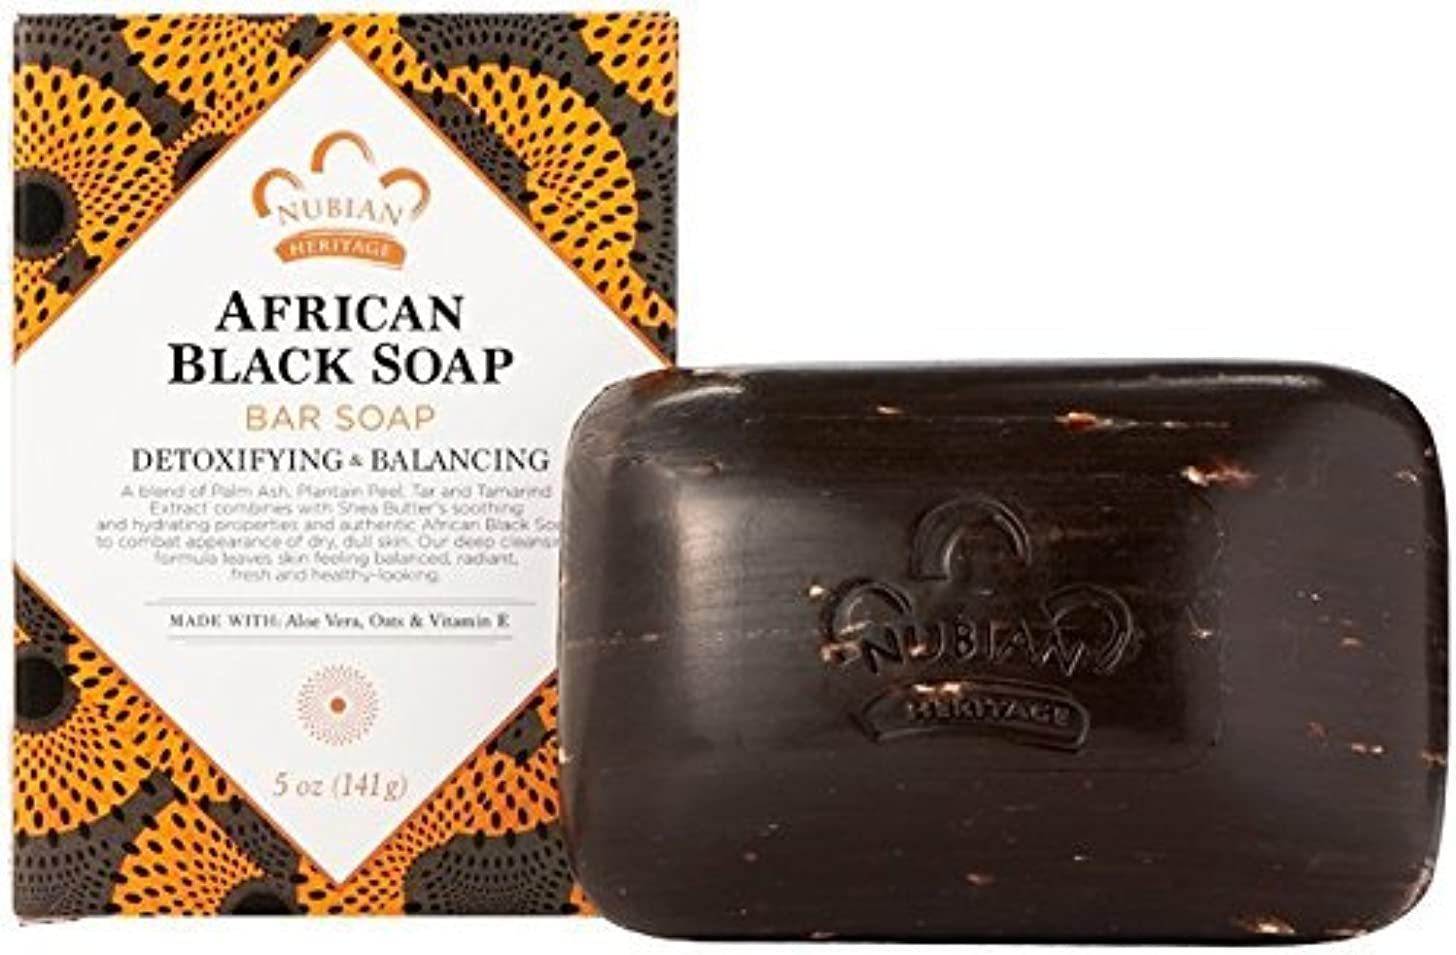 Bar Soap, African Blk with Al, 5 oz,pack of 4 by Nubian Heritage [並行輸入品]